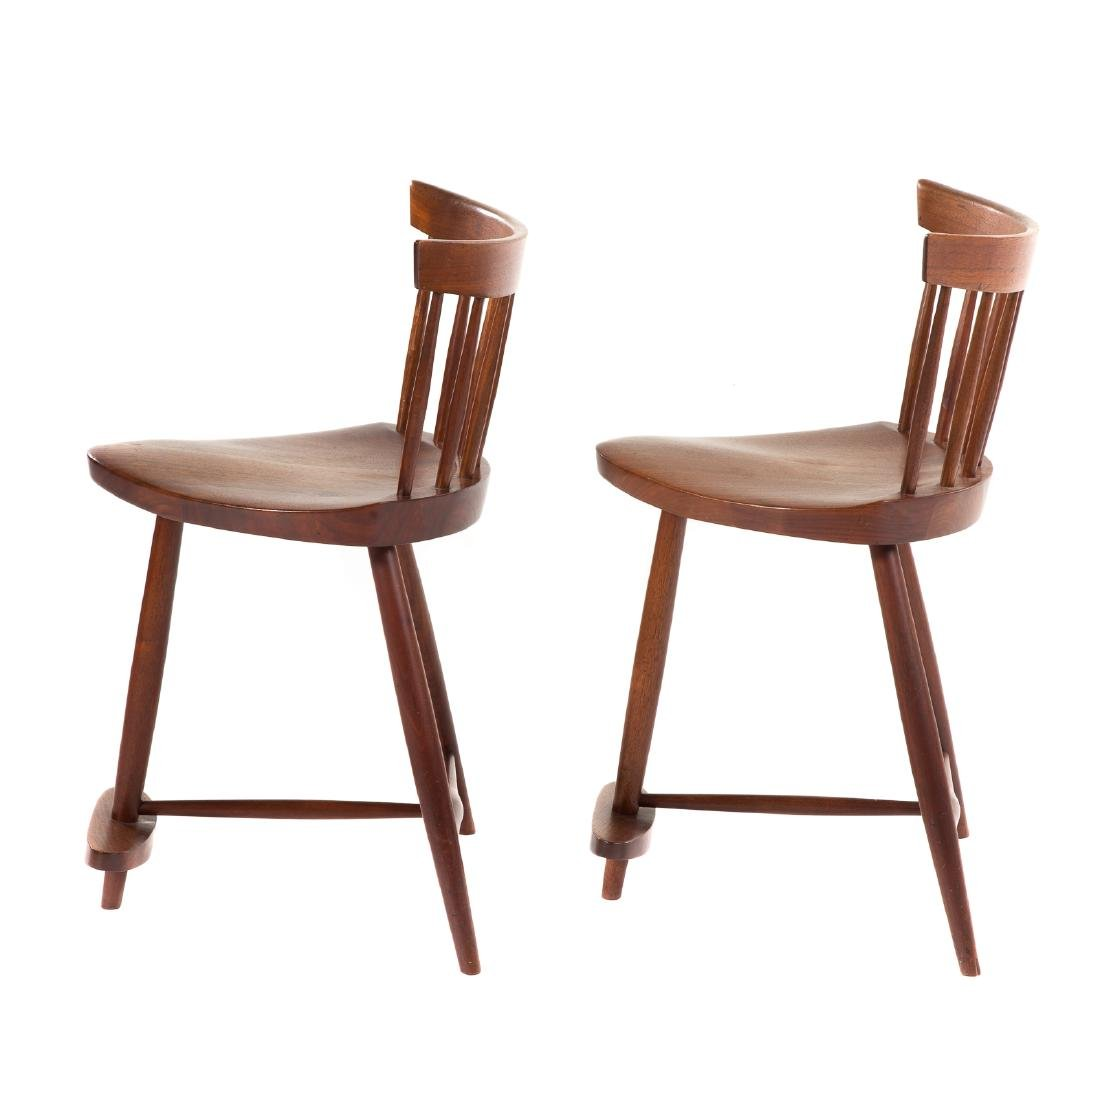 Pair of George Nakashima Mira Chairs - 2